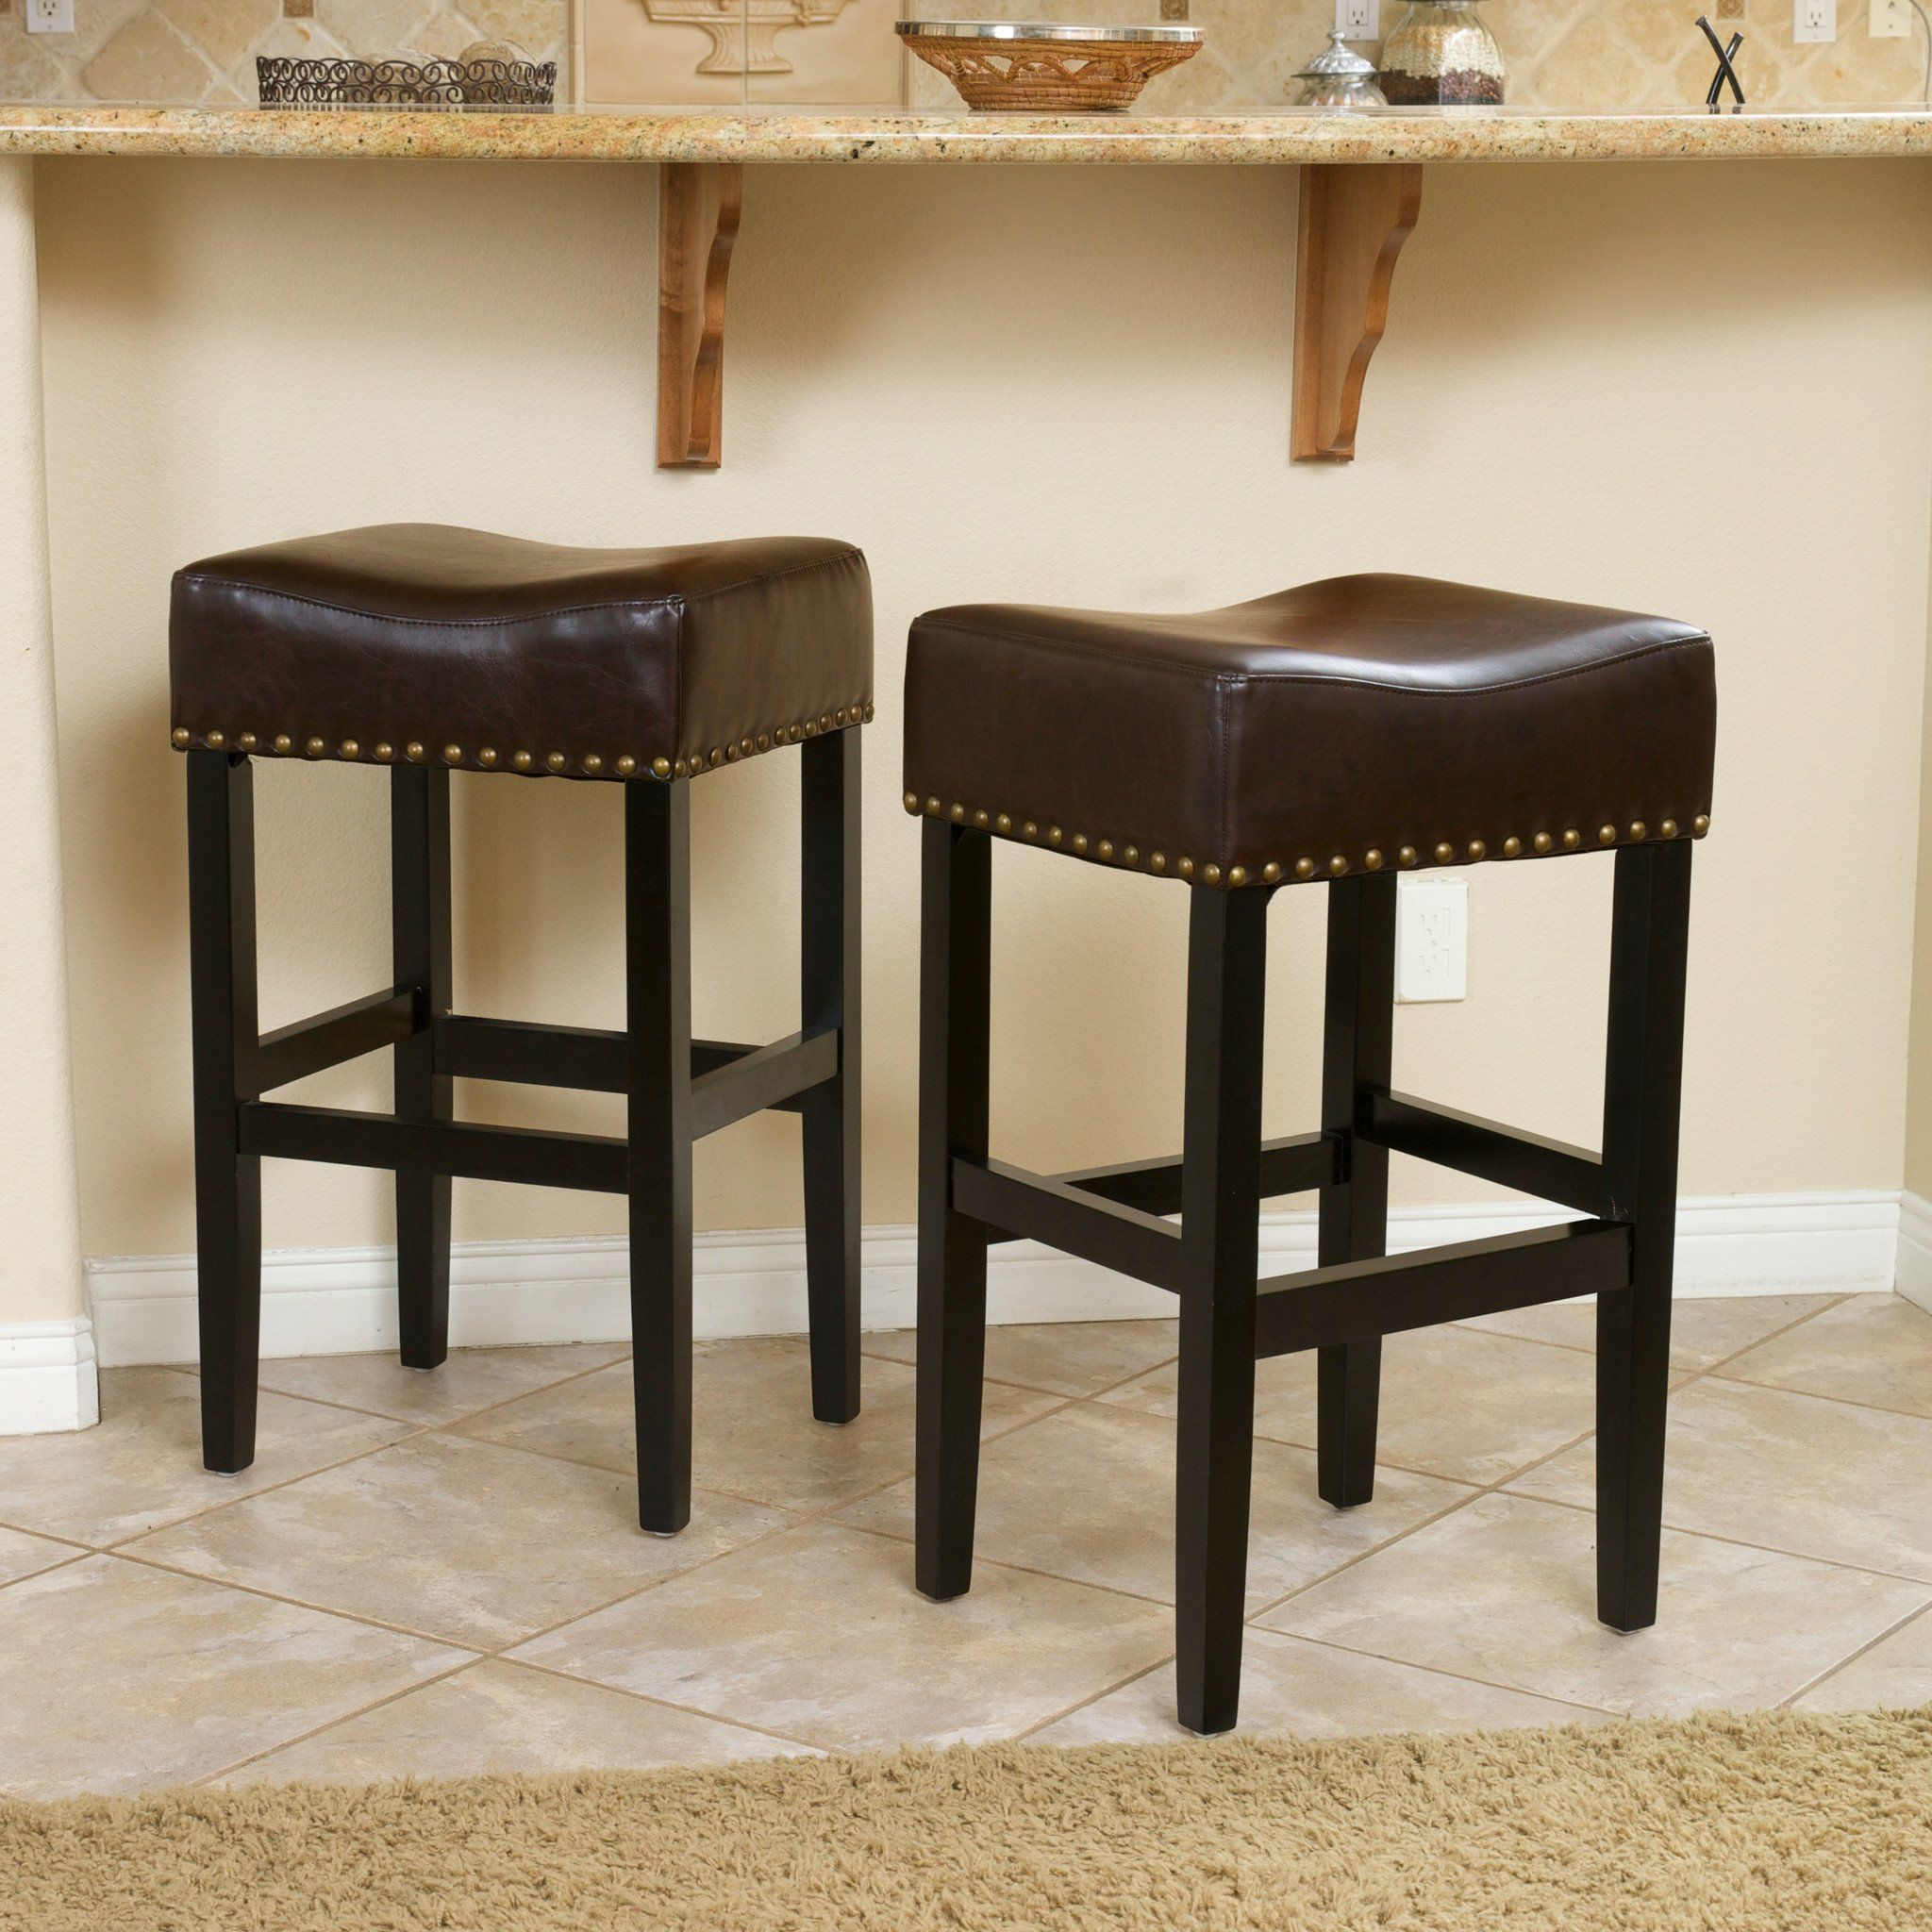 Ad Chantal Brown Leather Bar Stool Set Of 2 These Comfortably